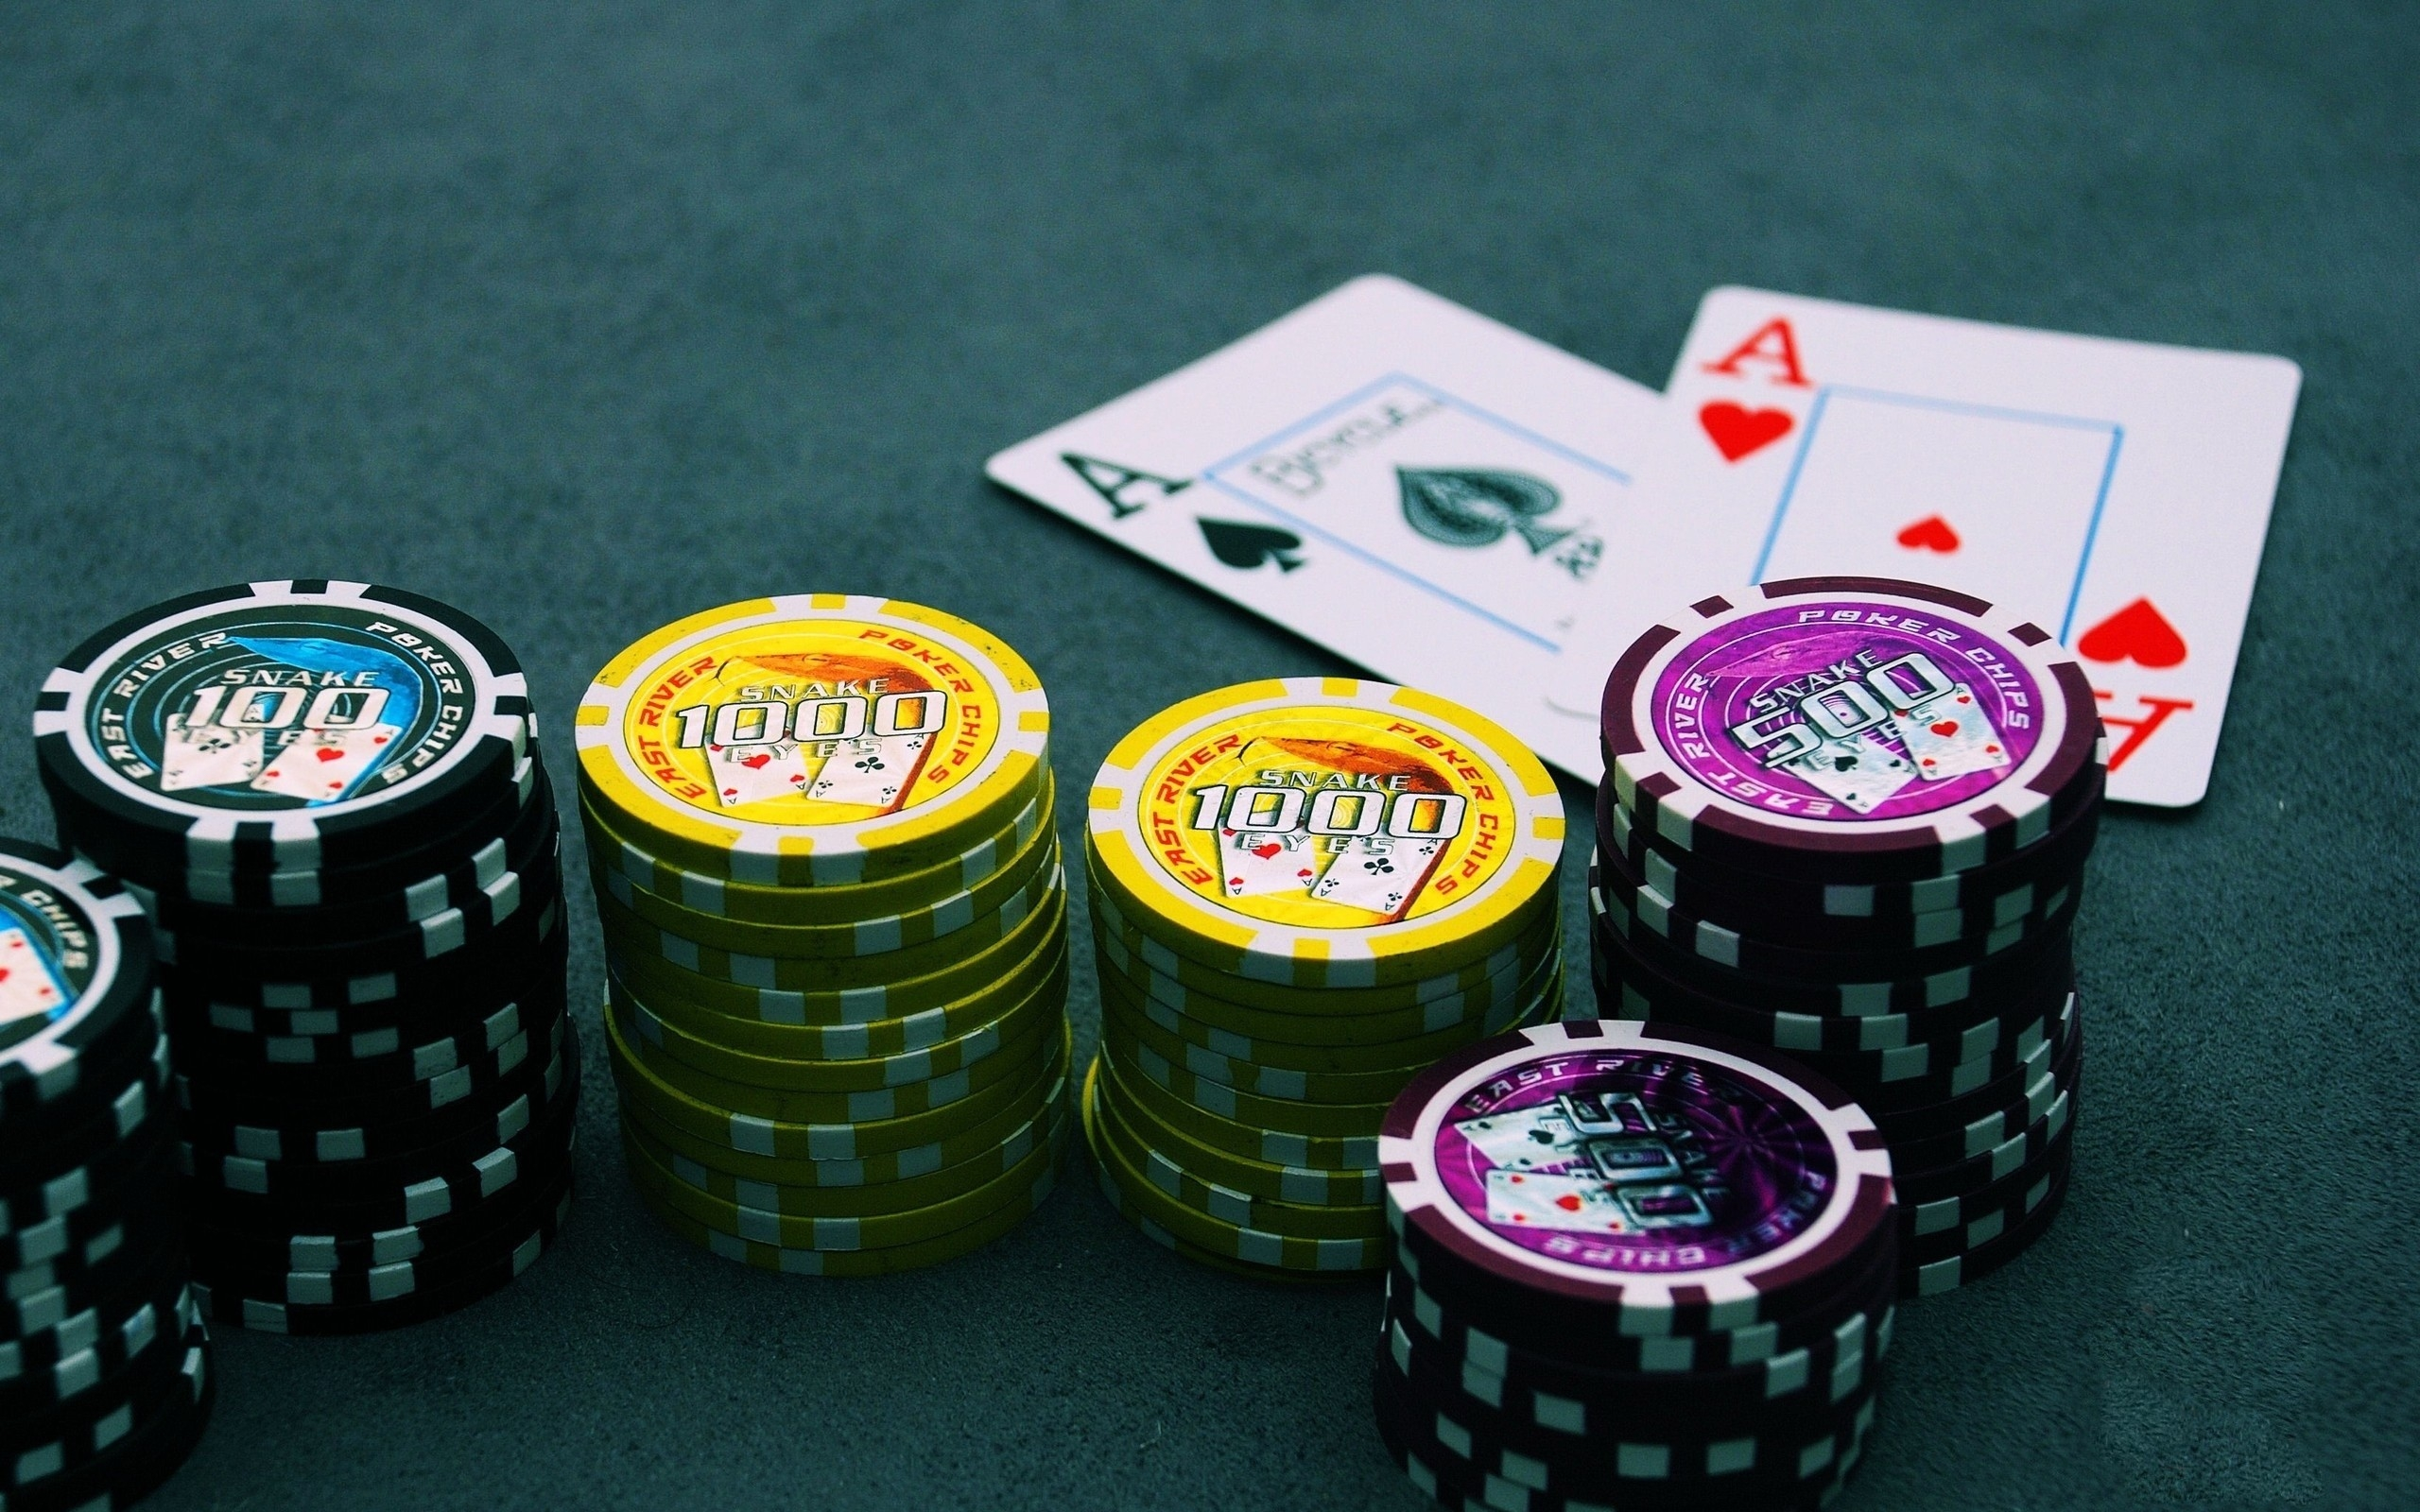 What are some of the health benefits of playing casino games?